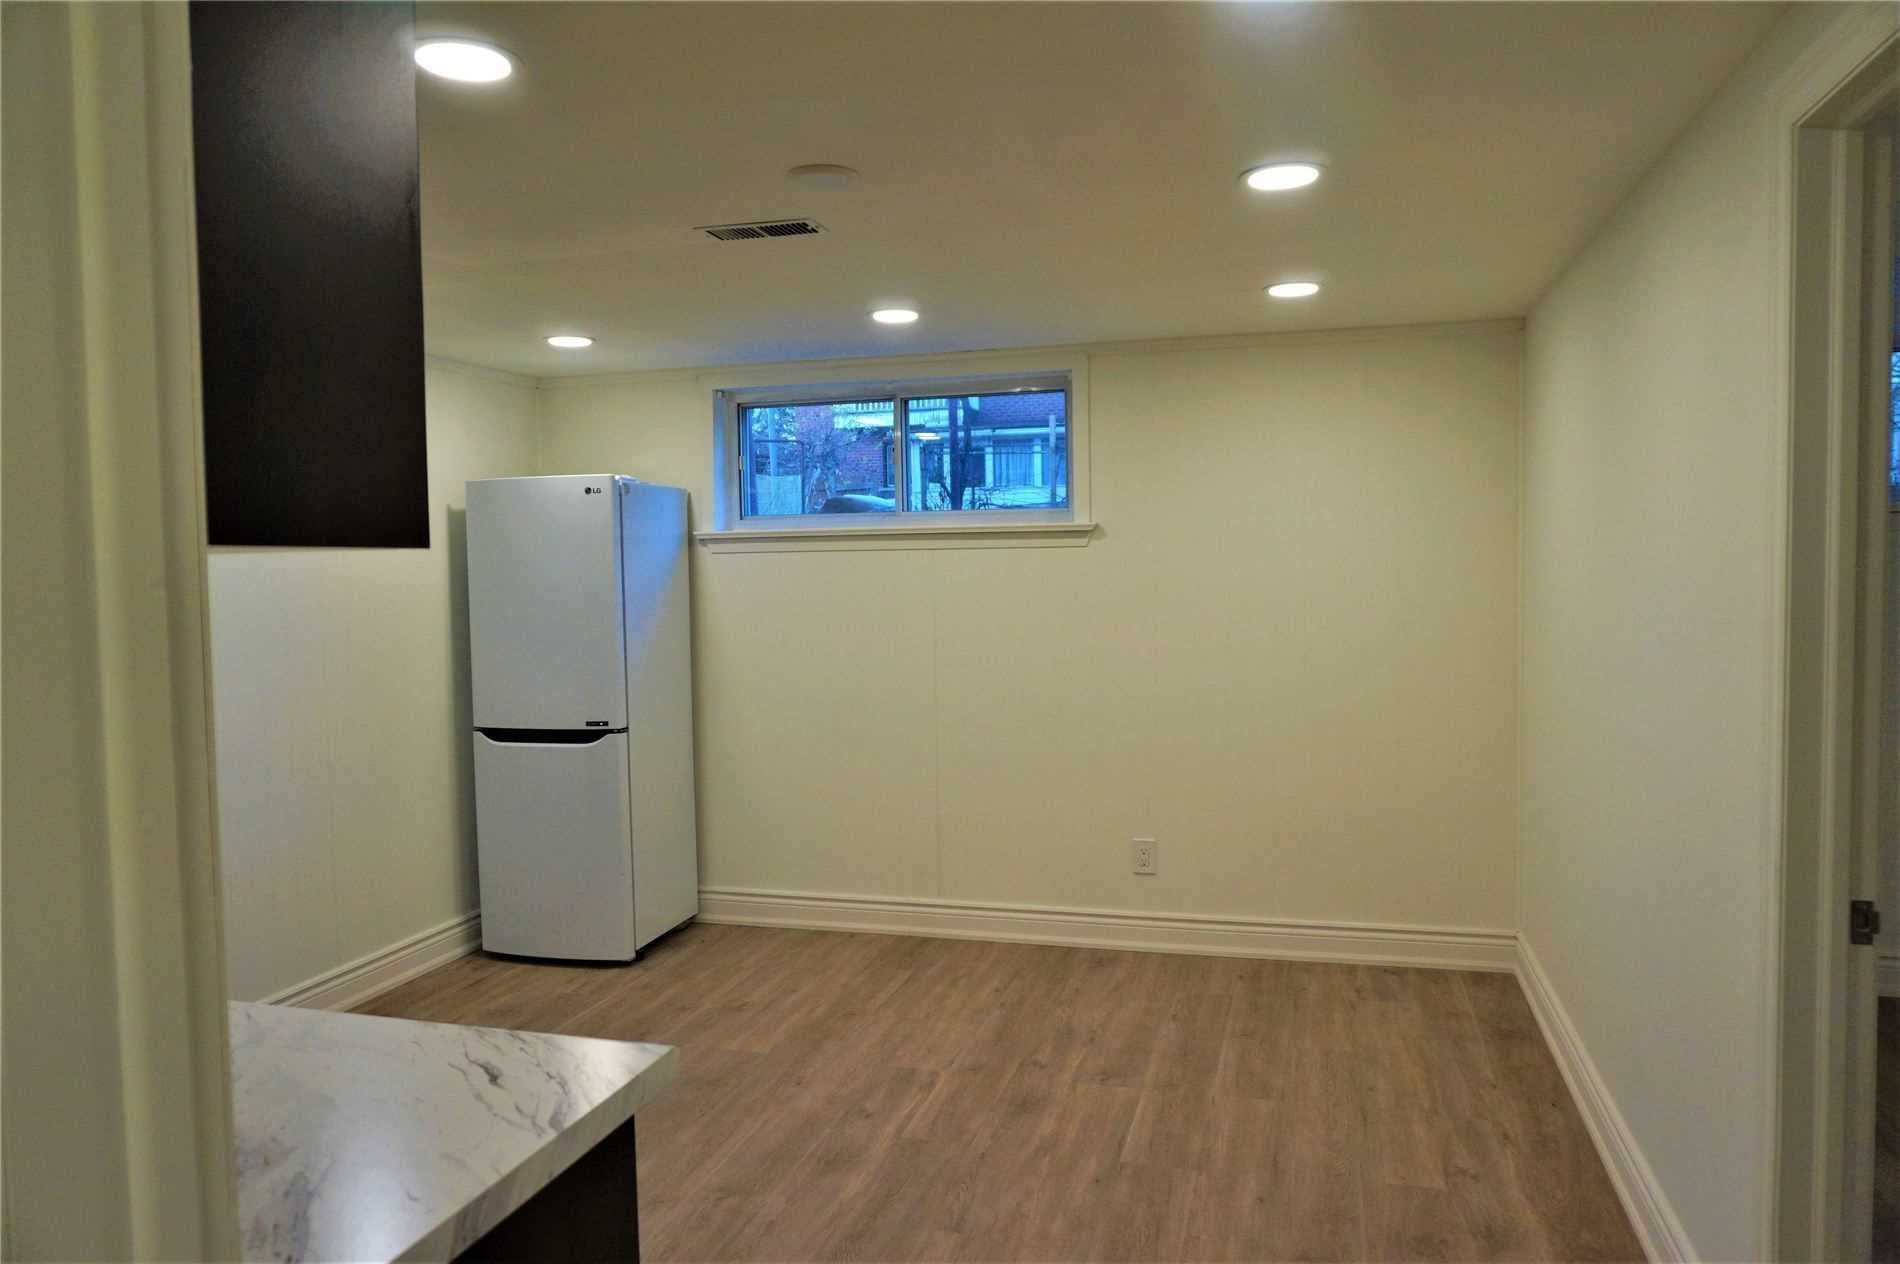 Image 4 of 10 showing inside of 1 Bedroom Detached Bungalow for Lease at 22 Otonabee Ave, Toronto M2M2S3